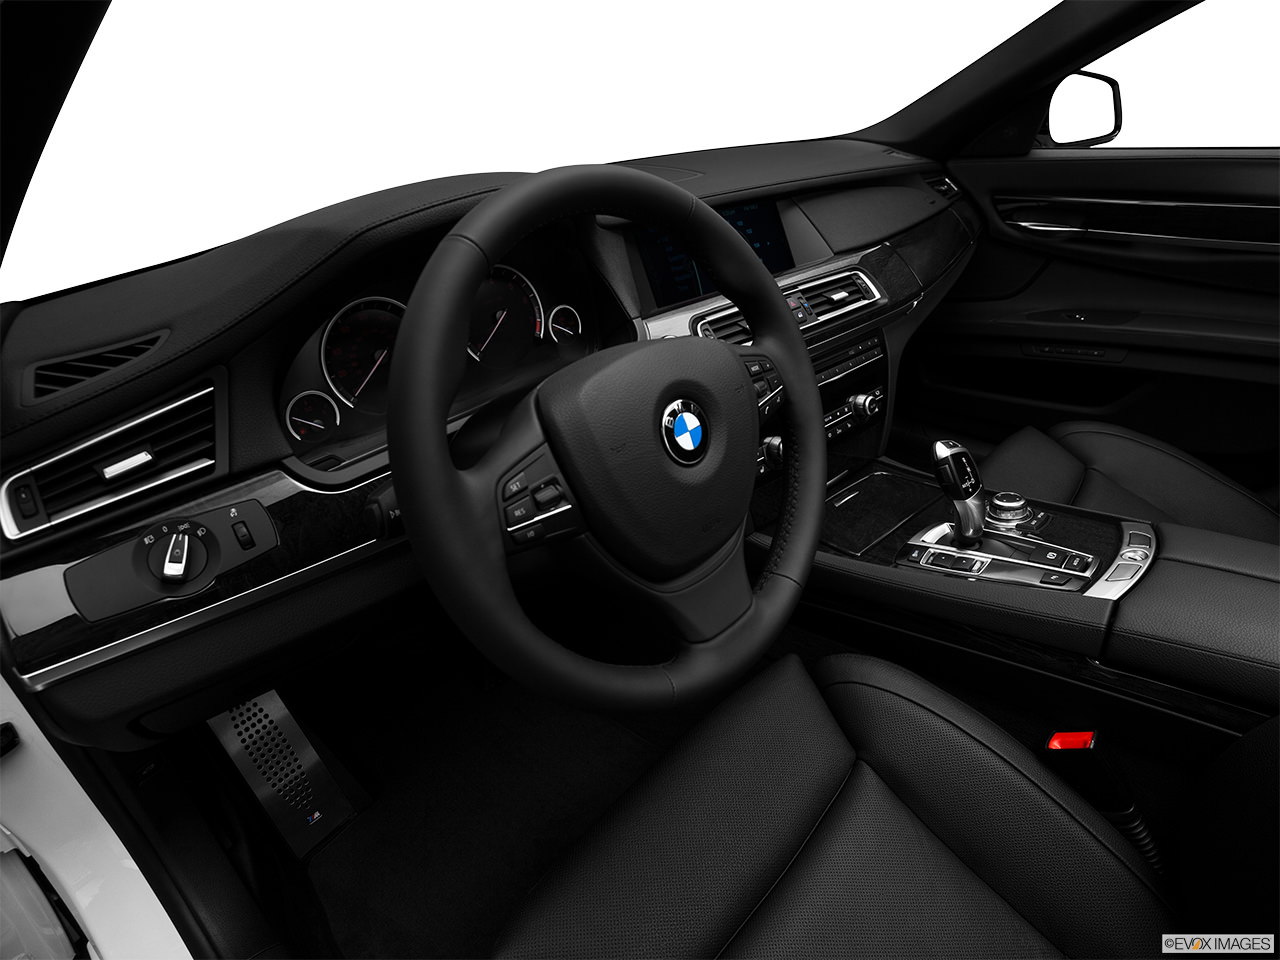 BMW 7-Series 2012 Interior